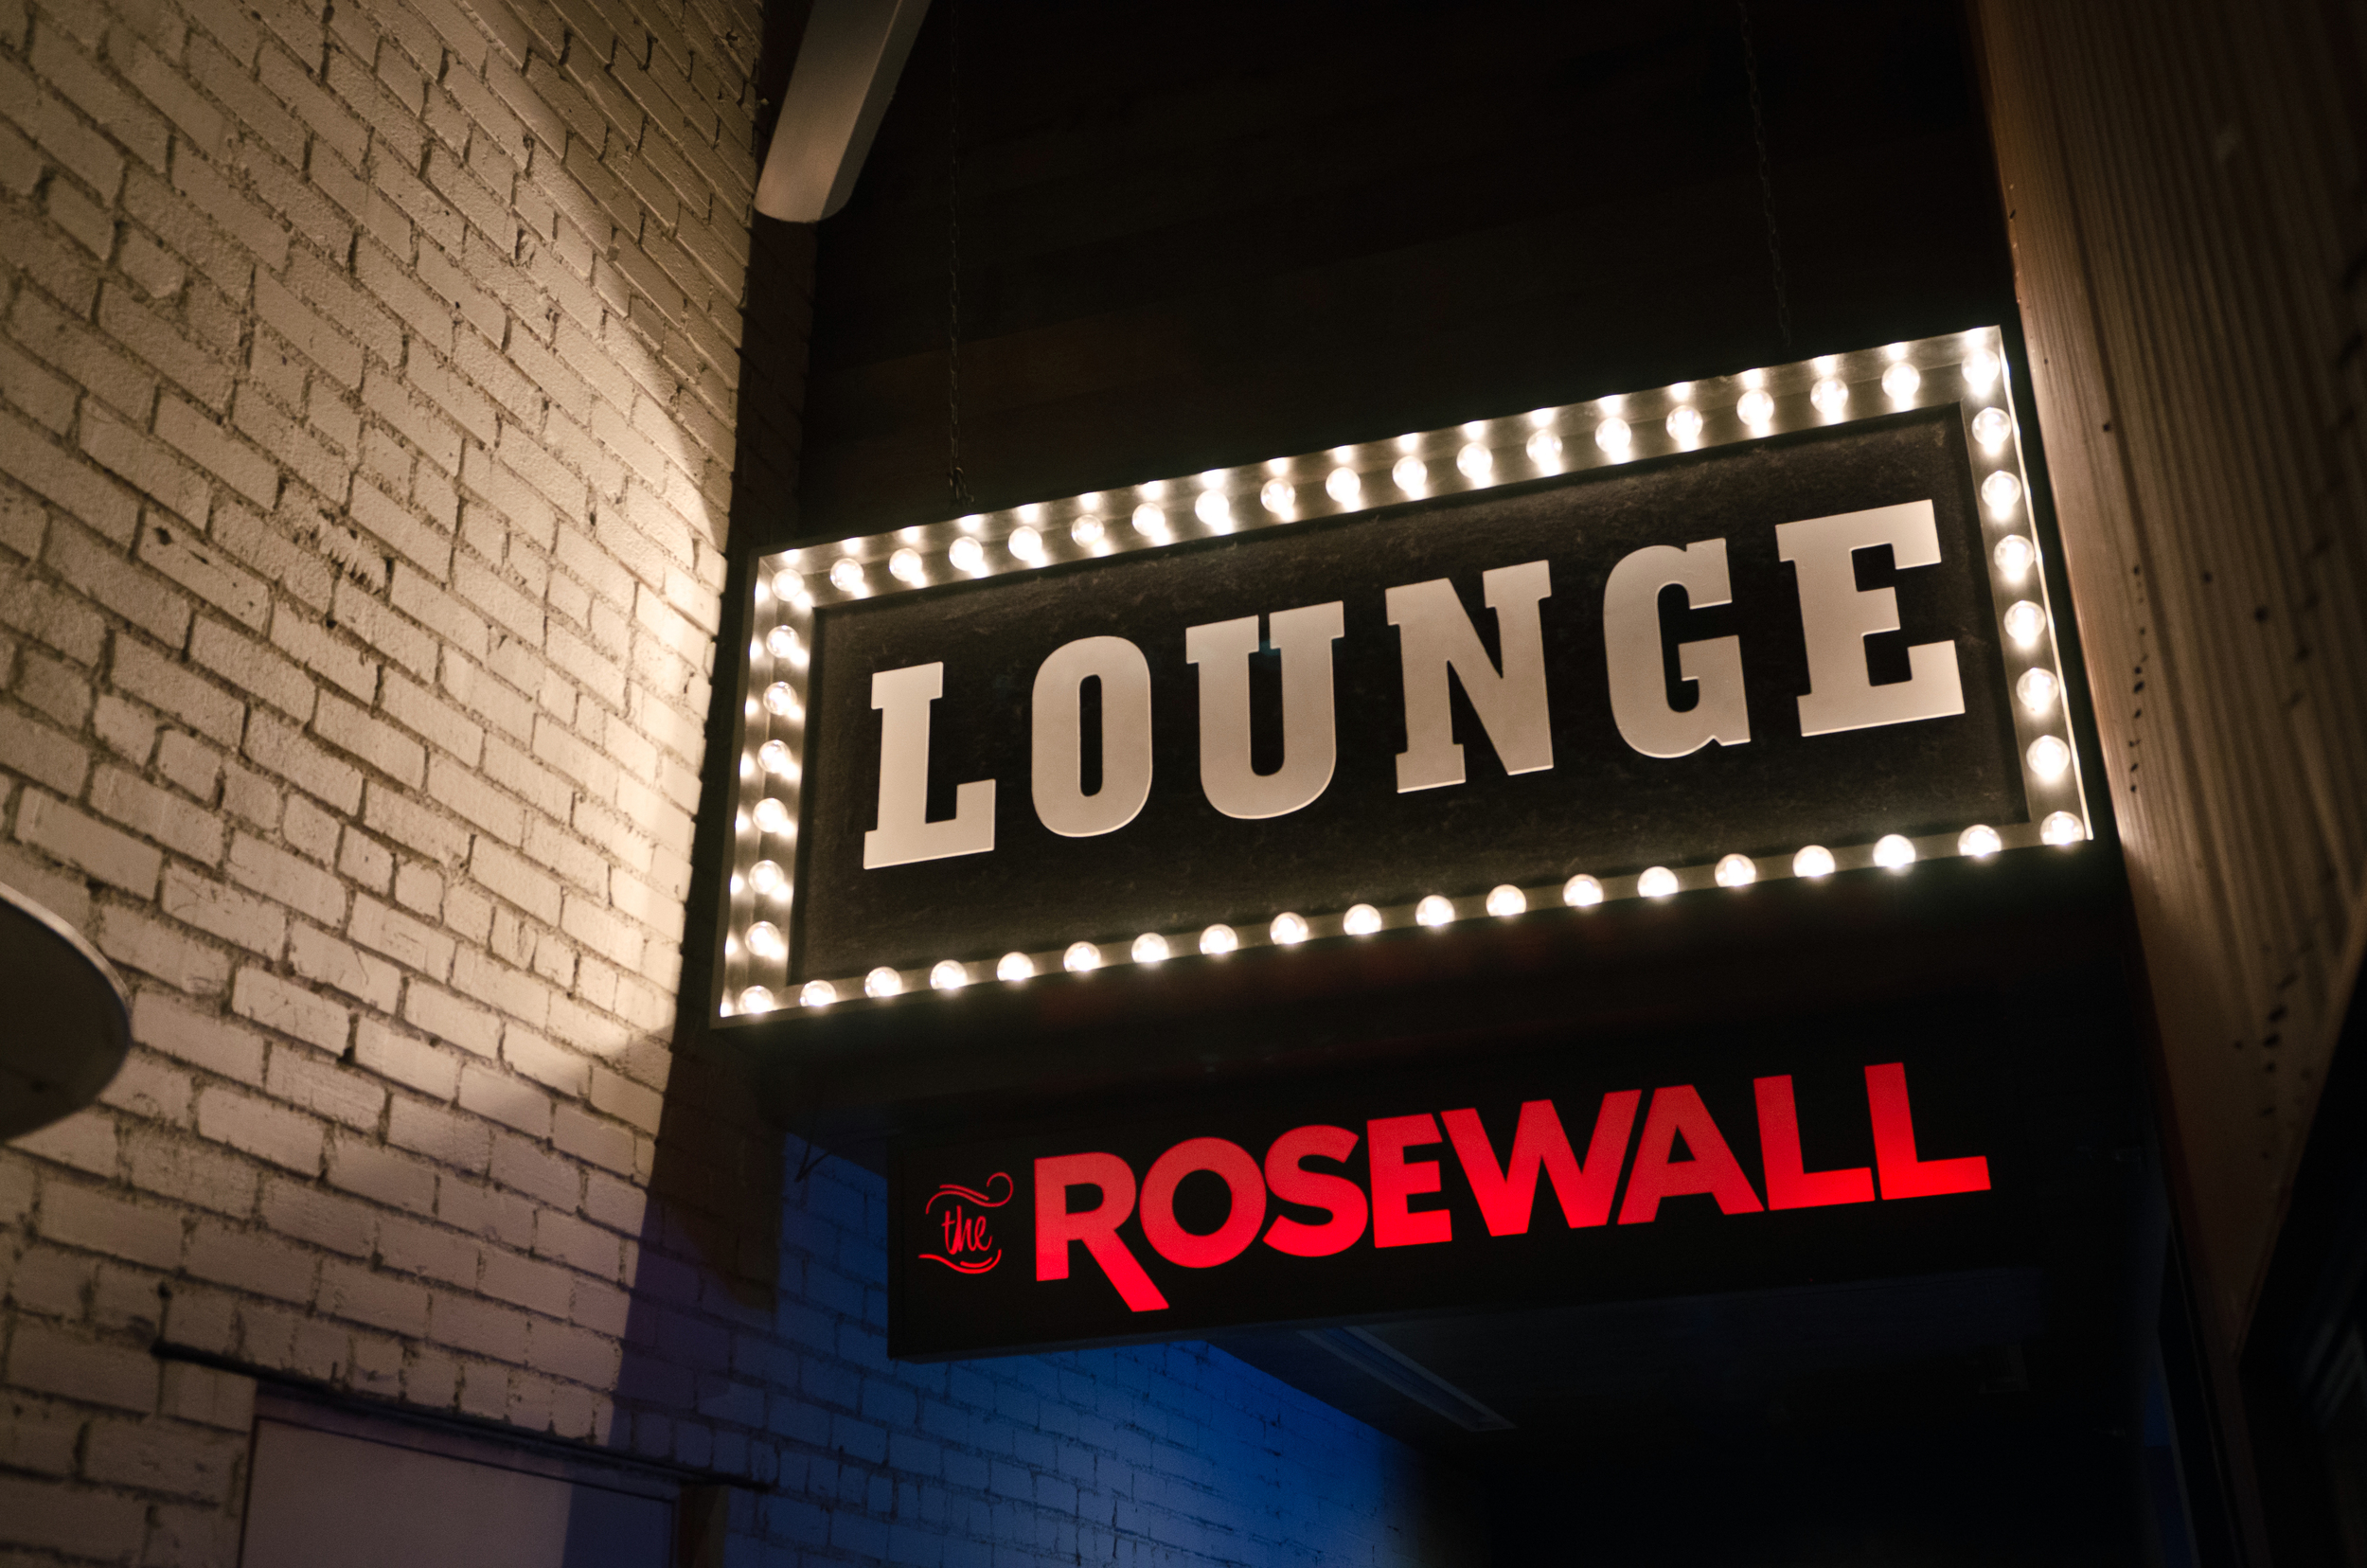 Enter The Rosewall to find yourself in the sexy, sophisticated Sugar Lounge